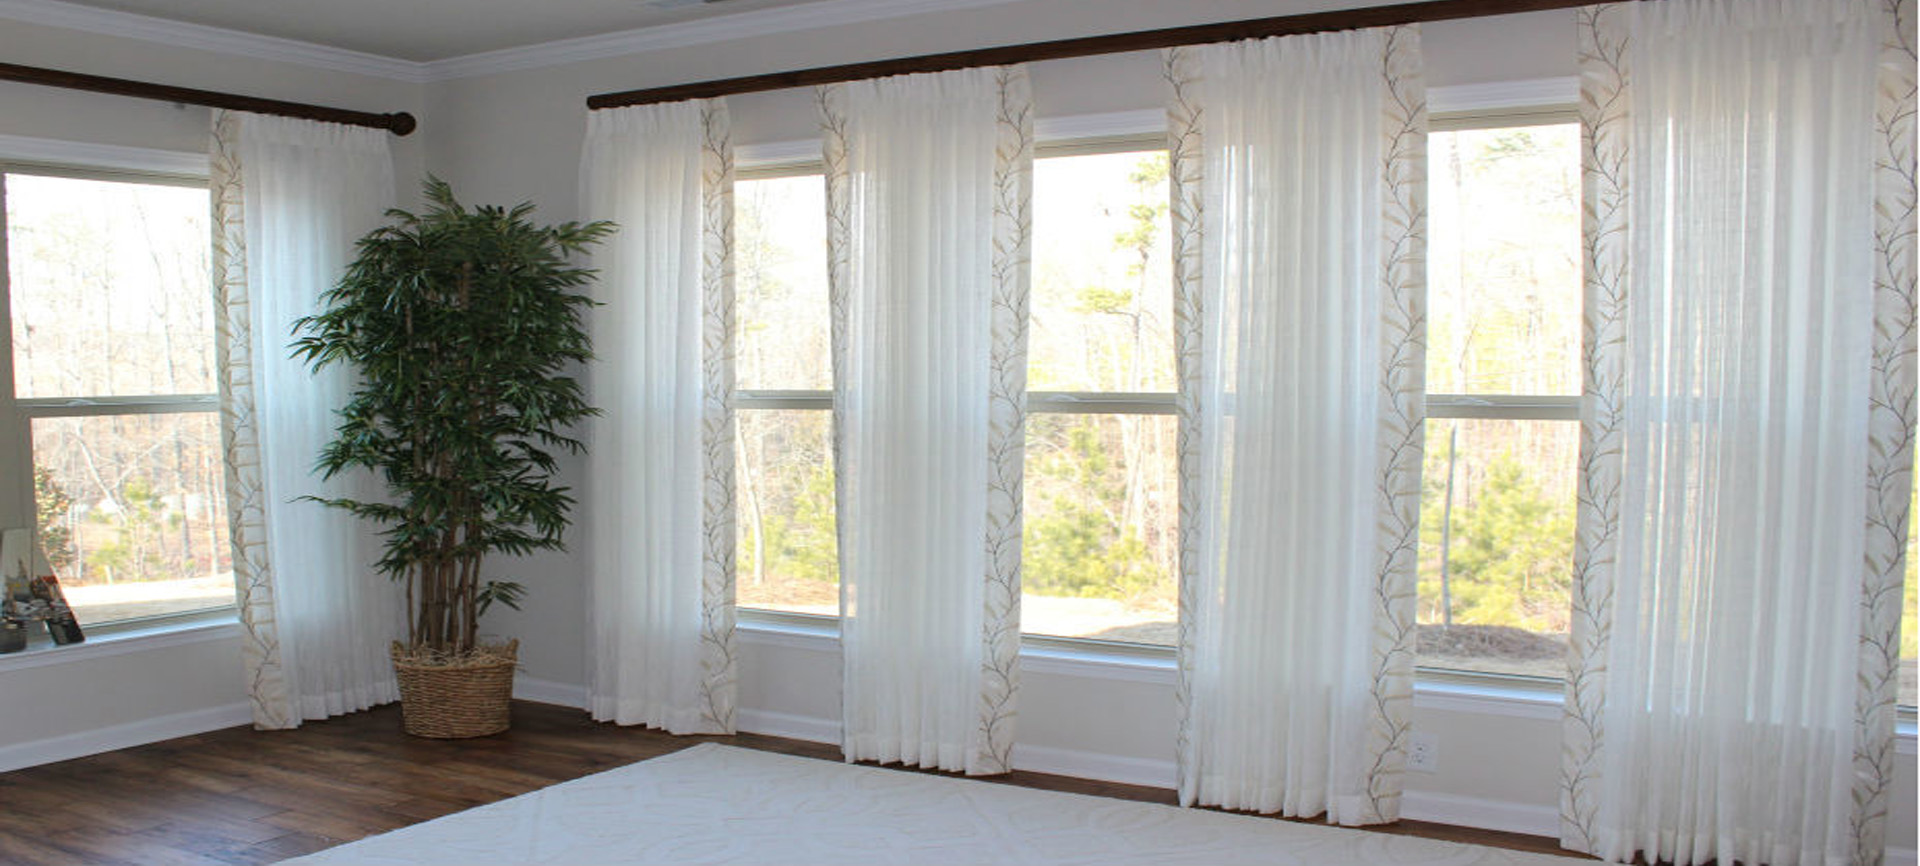 Custom window treatments custom jcpenney home window for Custom window treatments